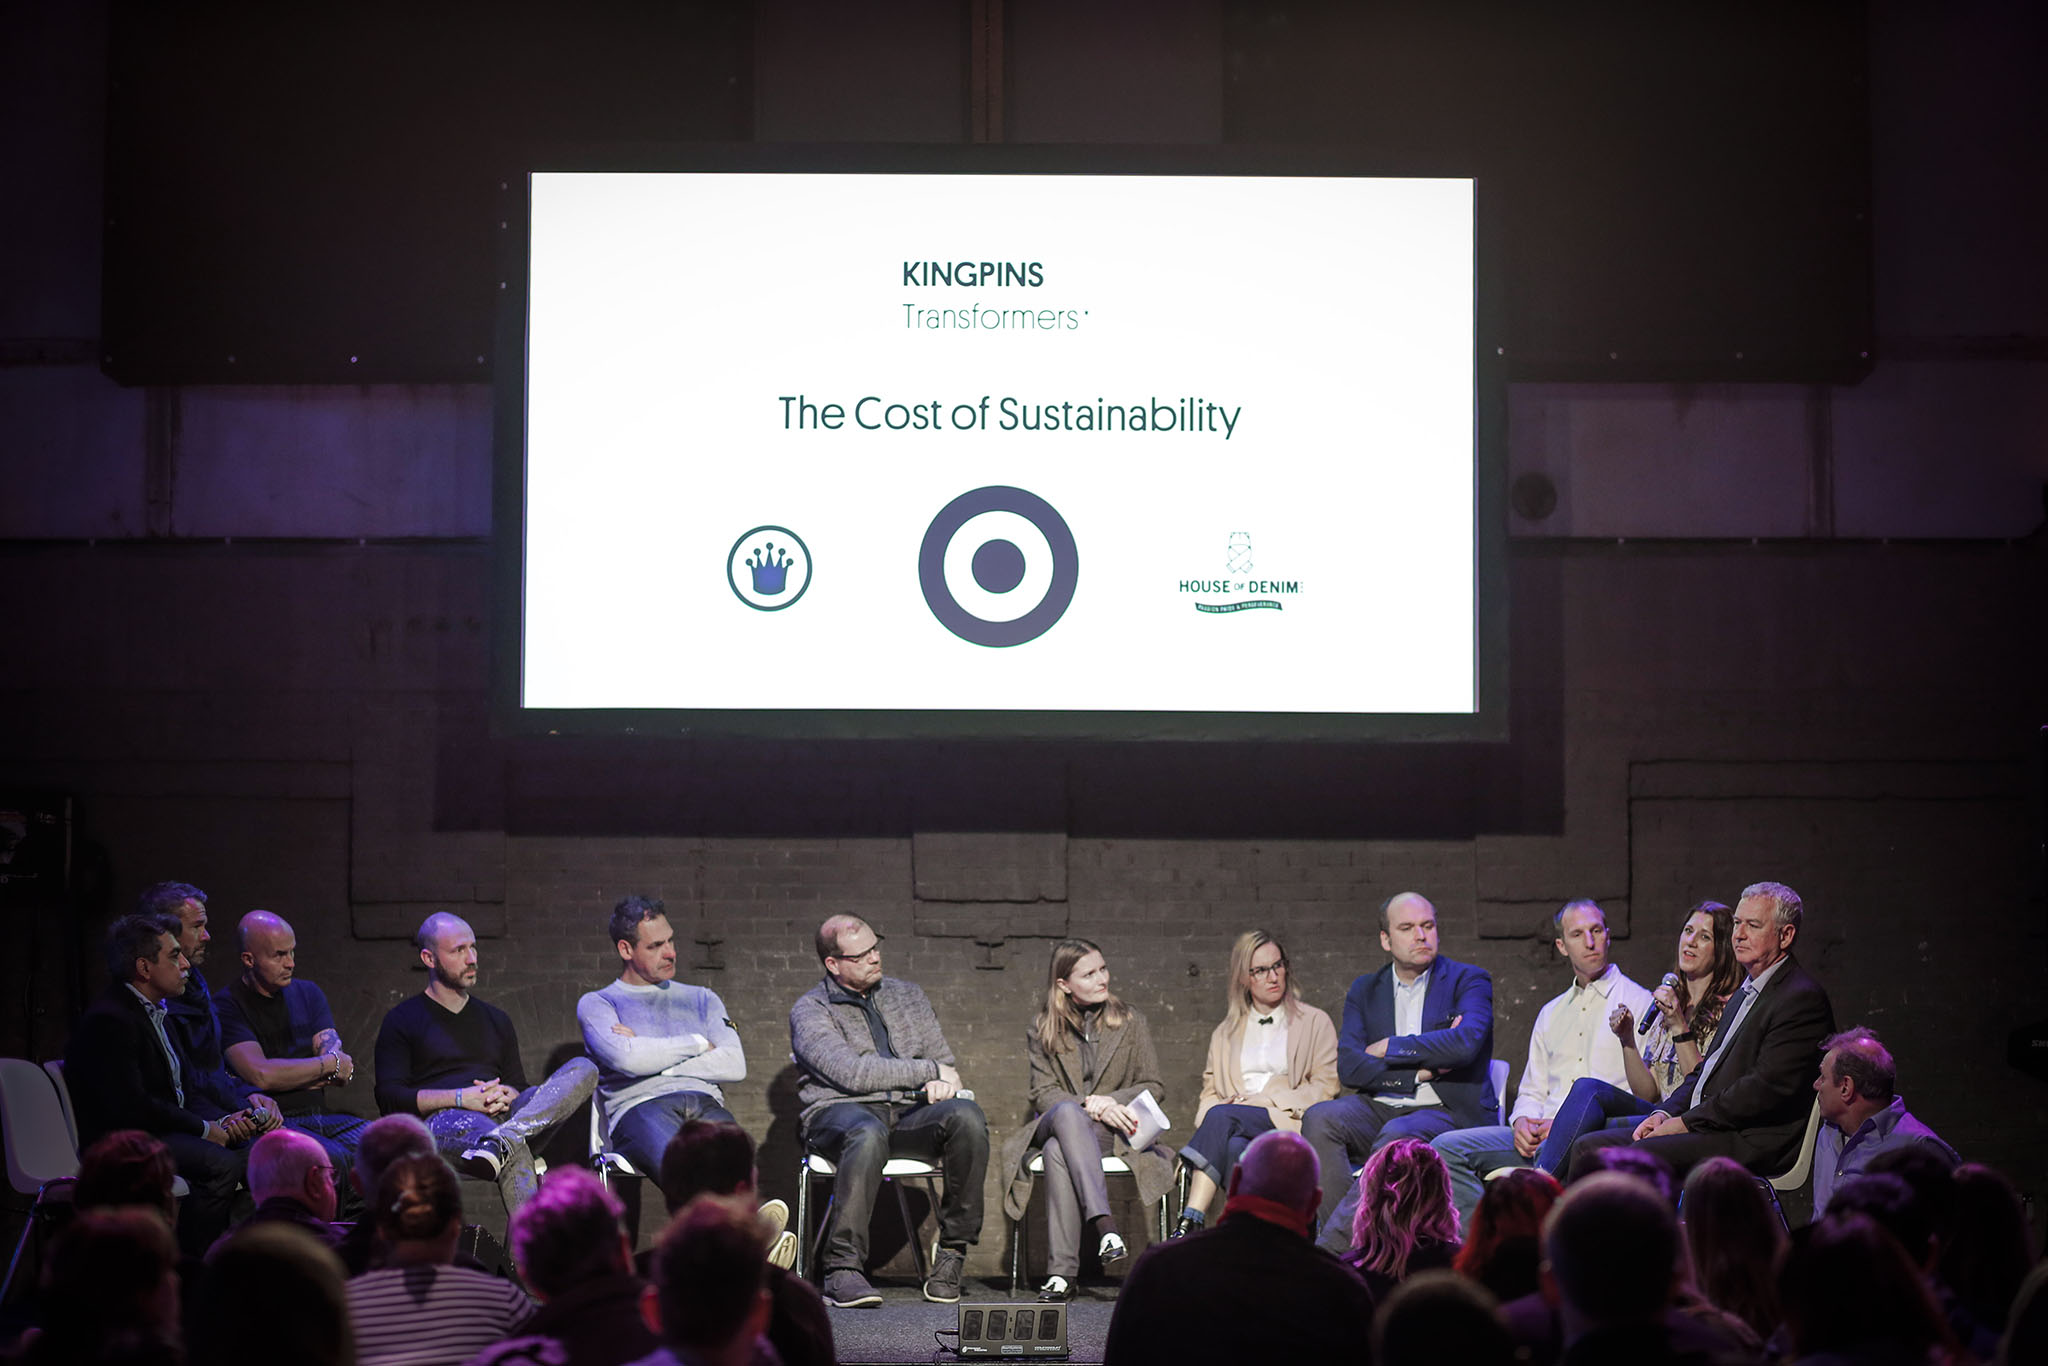 The panelists of Kingpins Transformers fielded questions on sustainability for denim businesses across the production chain